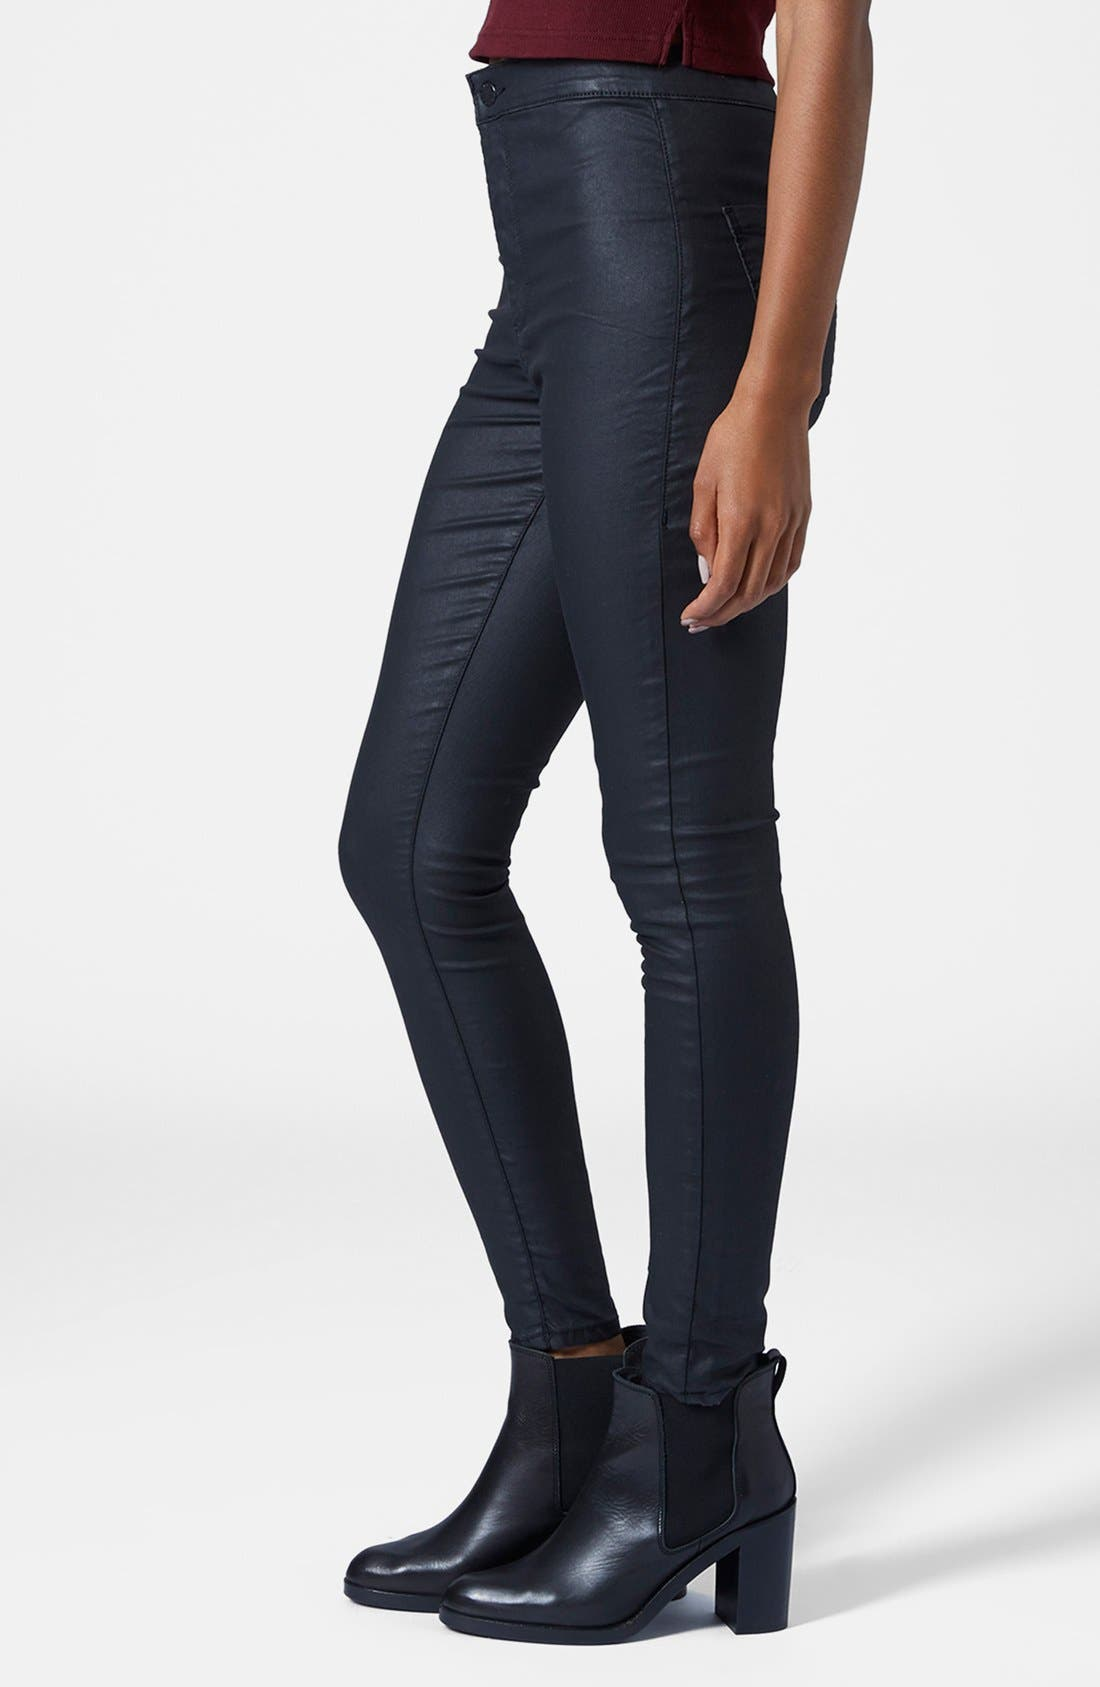 Alternate Image 1 Selected - Topshop Moto 'Joni' Coated Skinny Jeans (Black)